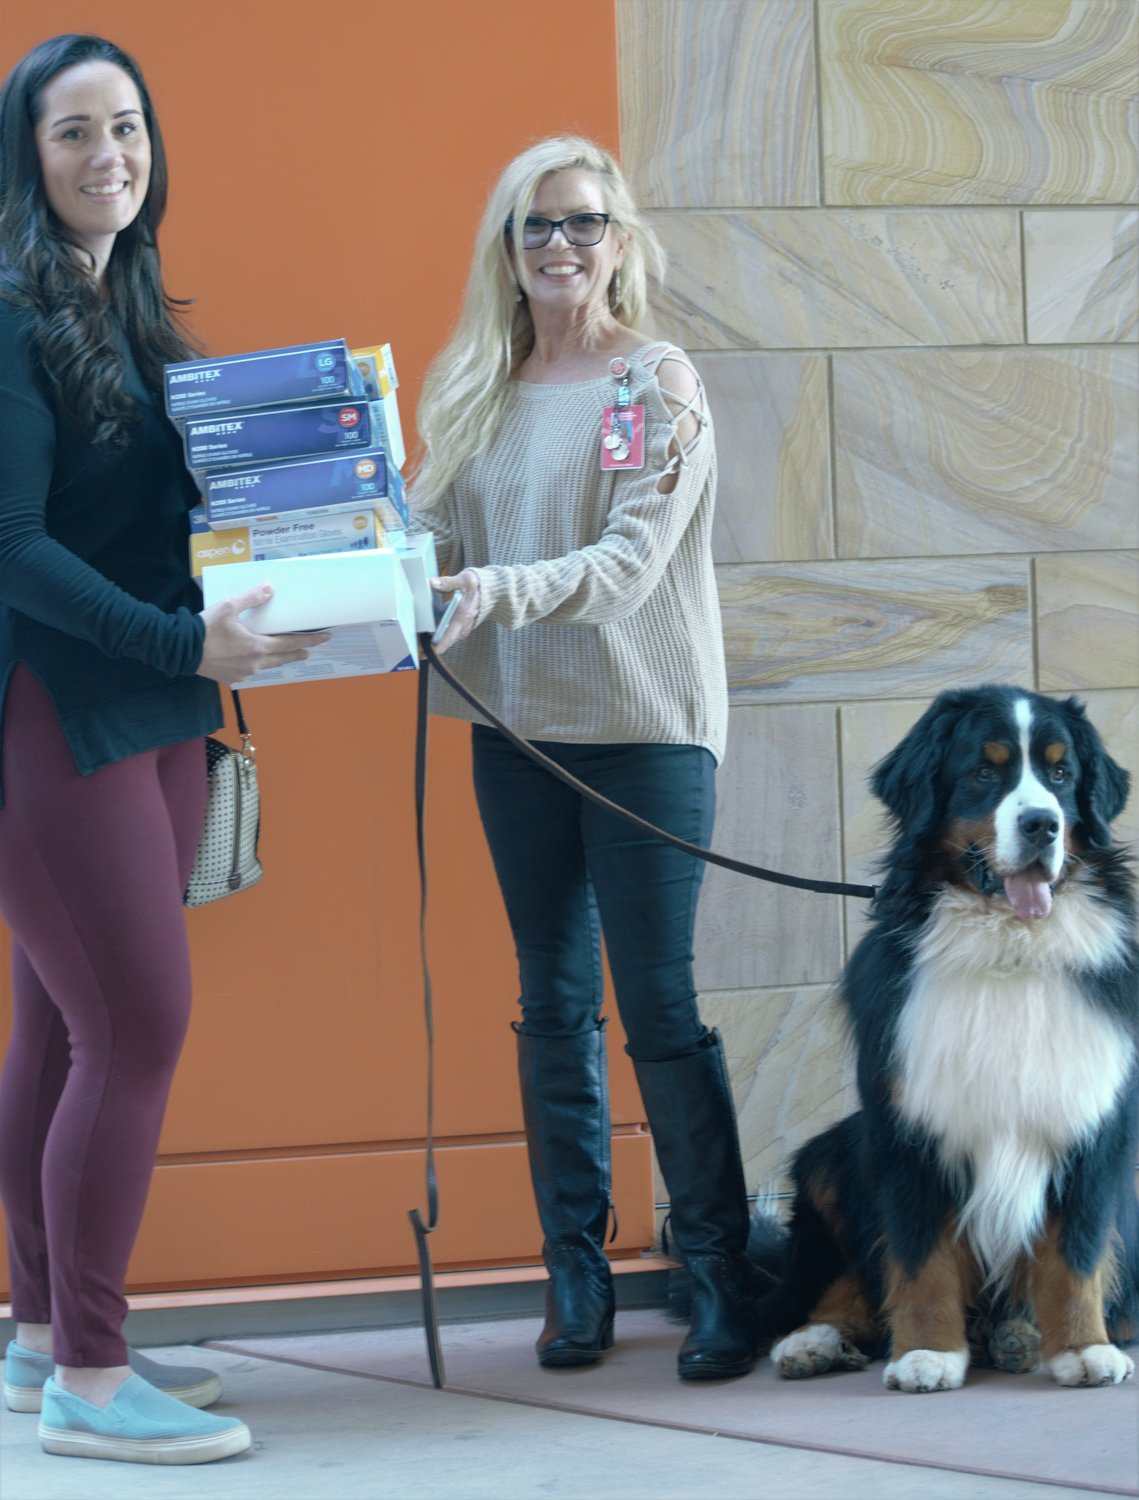 Applewood Animal Hospital Medical Director Dr. Elizabeth Drummond delivers supplies with the animal hospital's official greeter, a four-year-old Bernese Mountain Dog who is a registered therapy dog, to Erin Hegedus, a member of the Phoenix Children's Hospital COVID-19 Command Center Team.